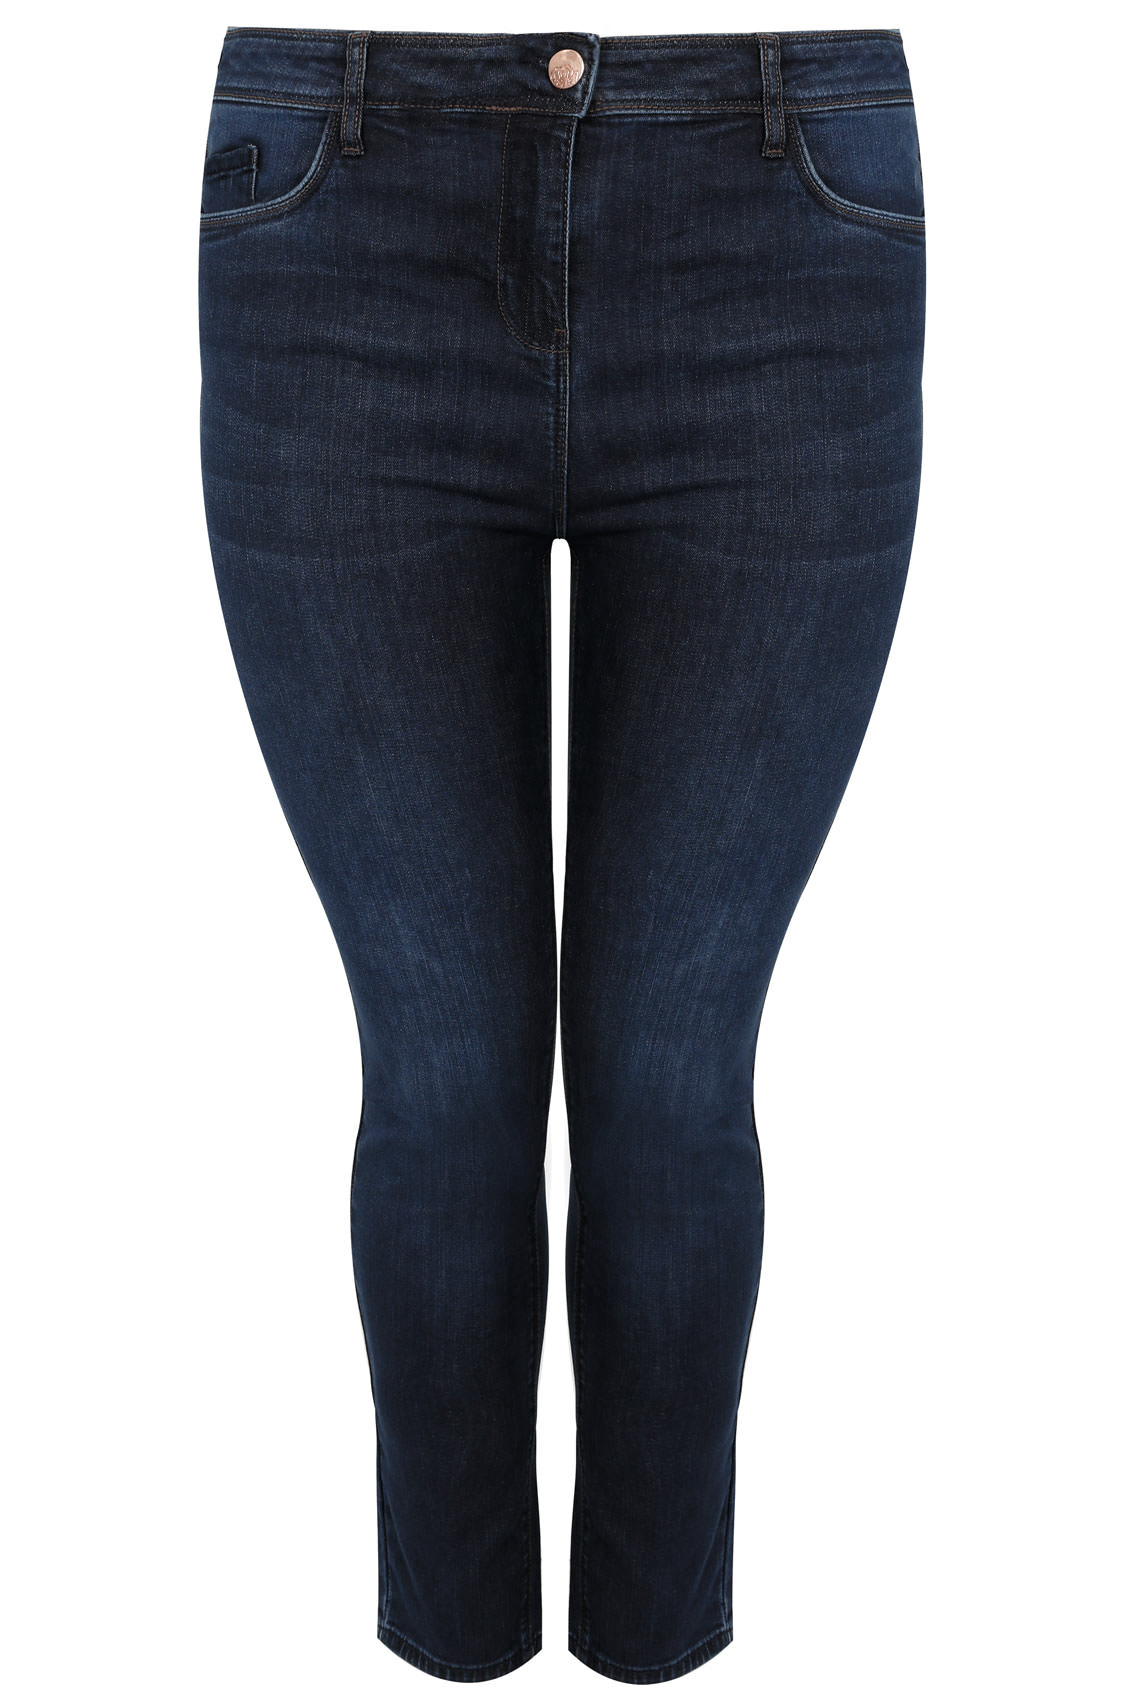 Indigo Blue Skinny Shaper Ava Jeans, Plus Size 14 To 28-4553